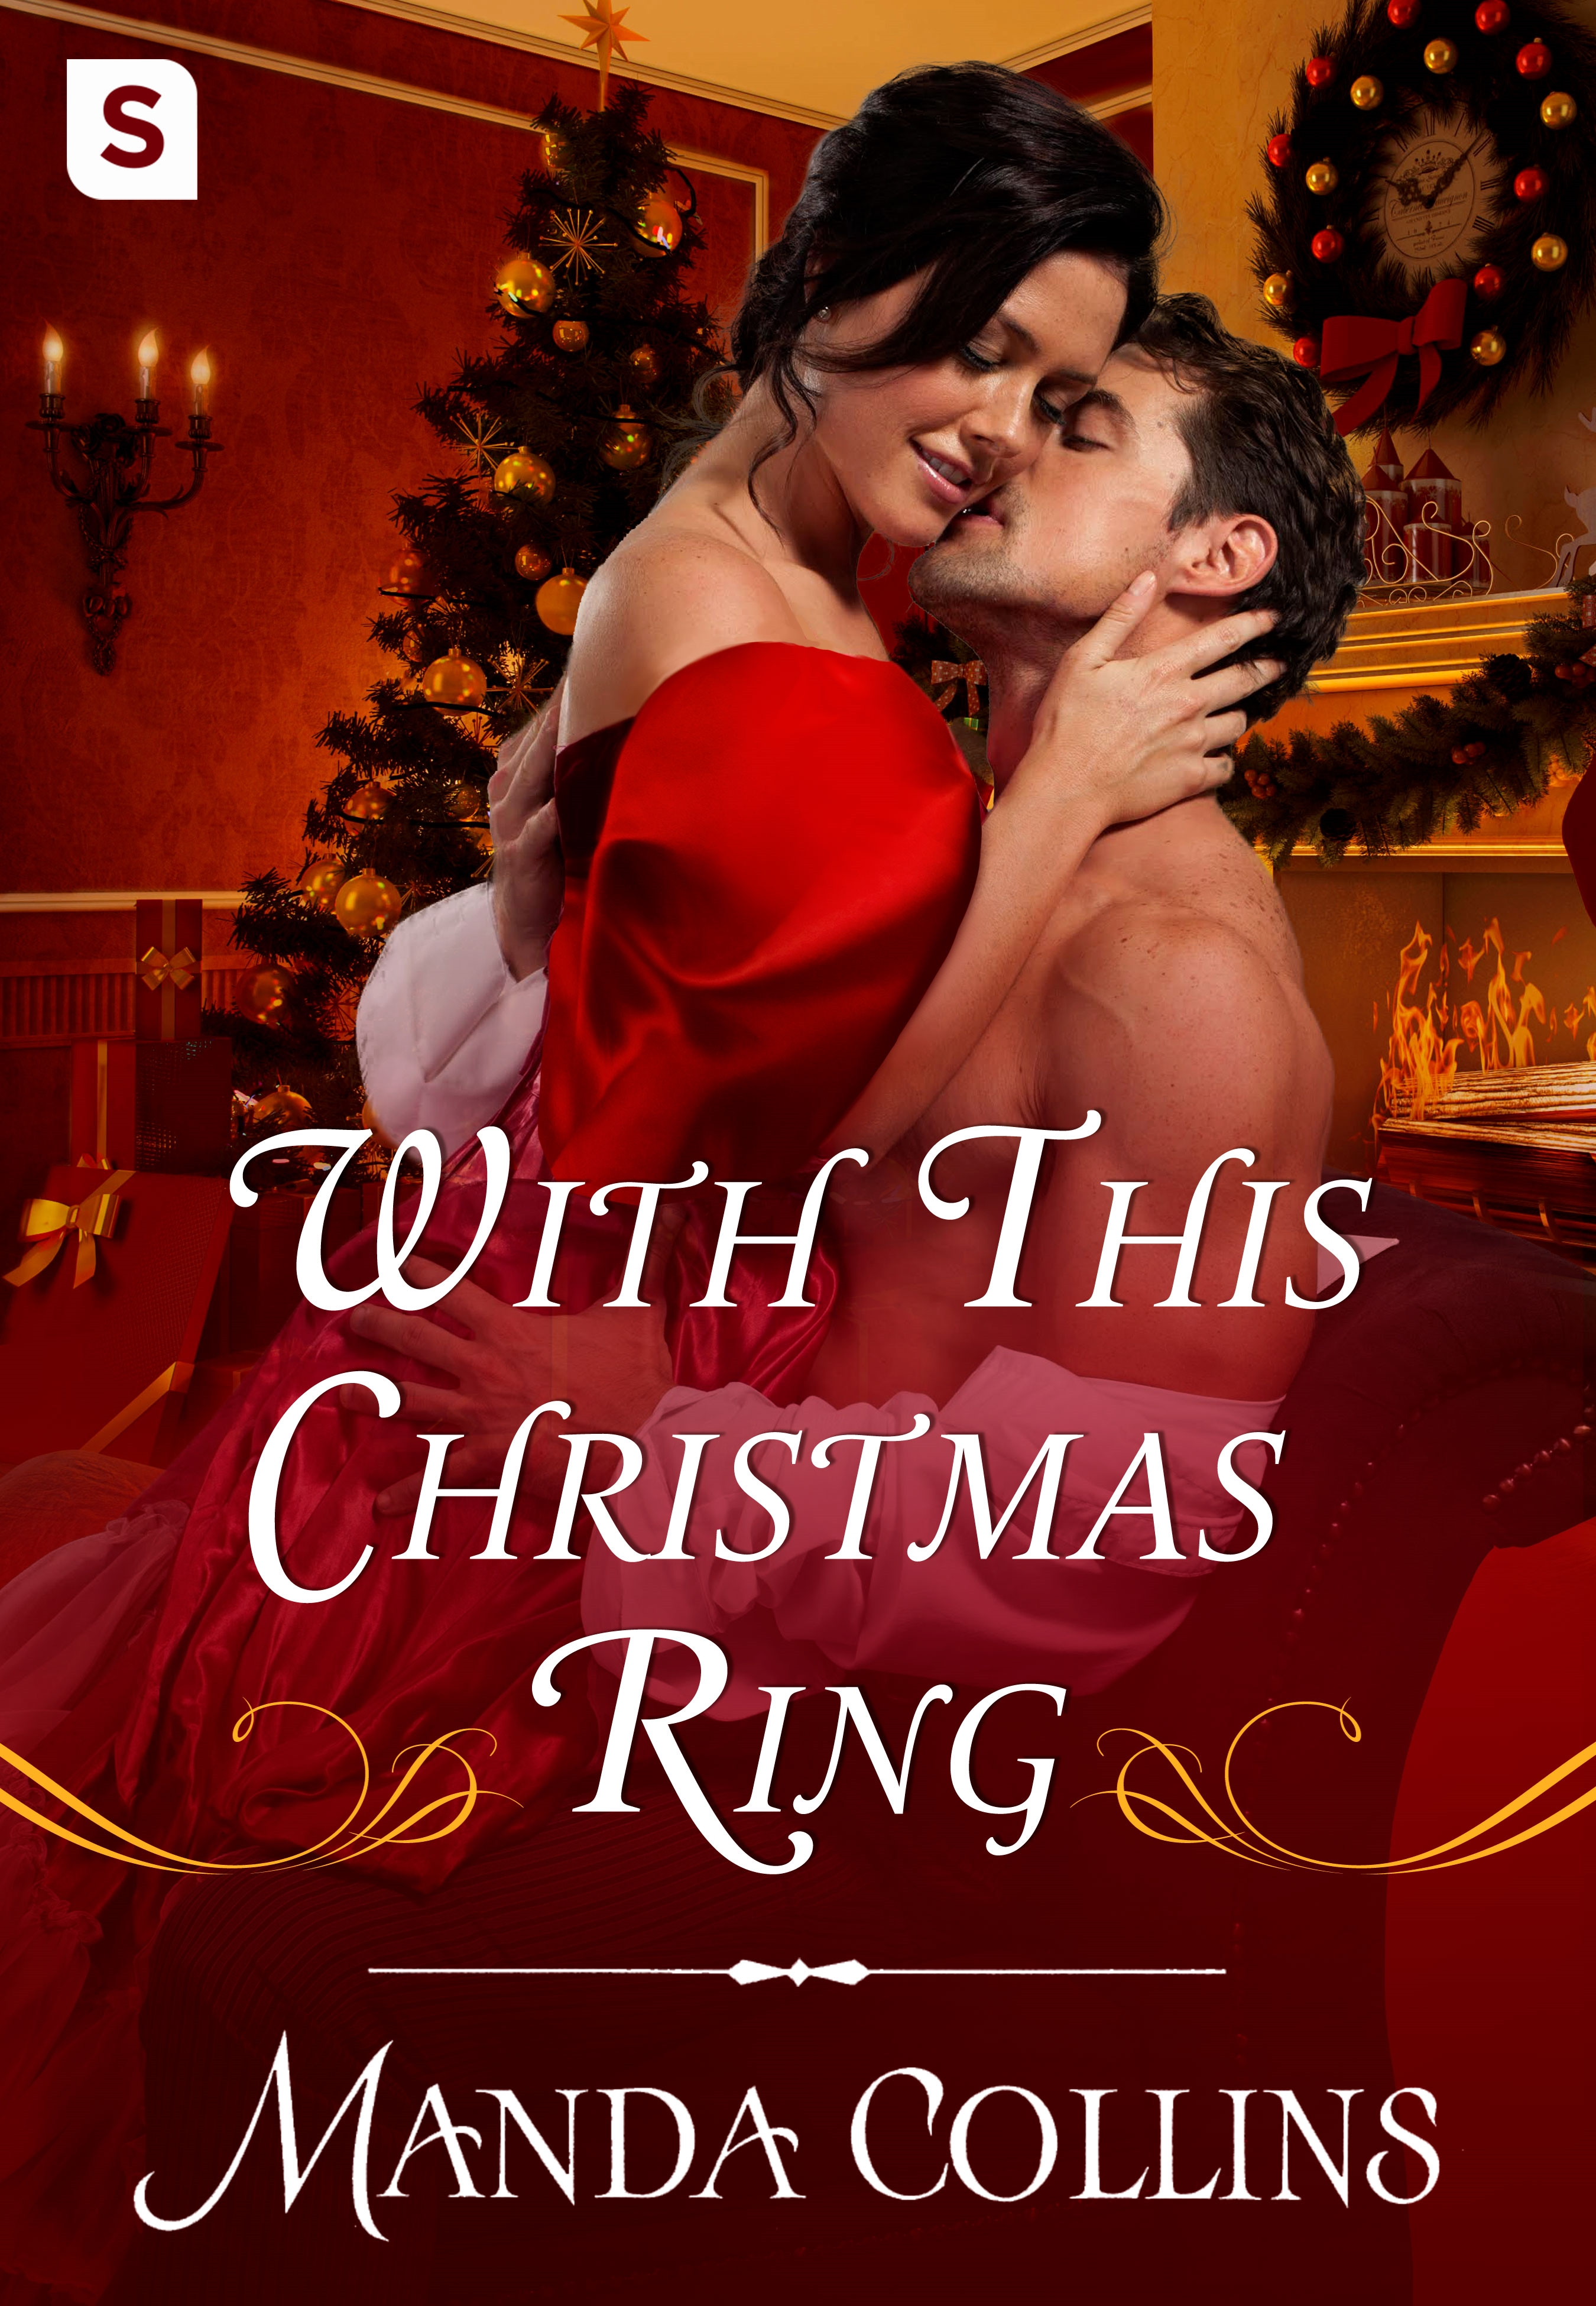 Christmas Romance Book Covers ~ With this christmas ring manda collins owlish books